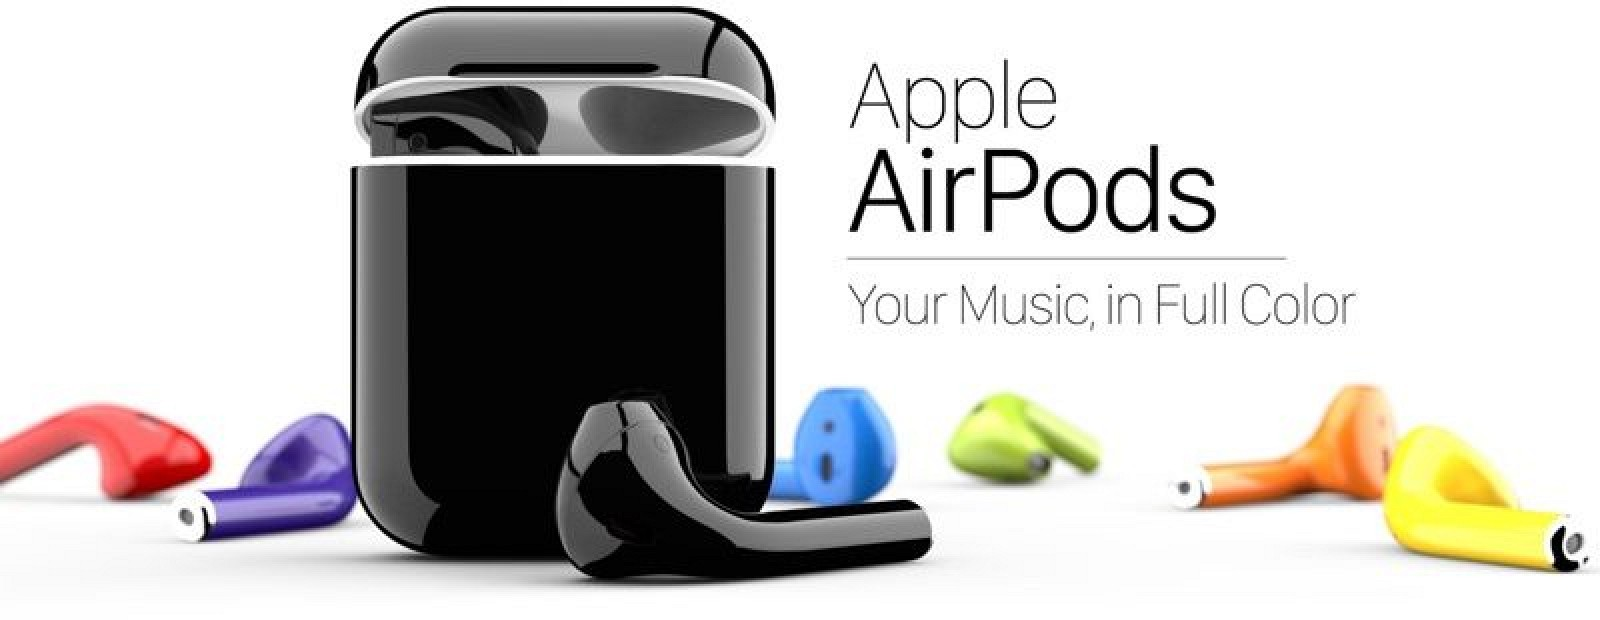 Black Friday 2017 Car Deals >> ColorWare is Now Selling Apple's AirPods in 58 Colors if You're Willing to Pay $289 - MacRumors